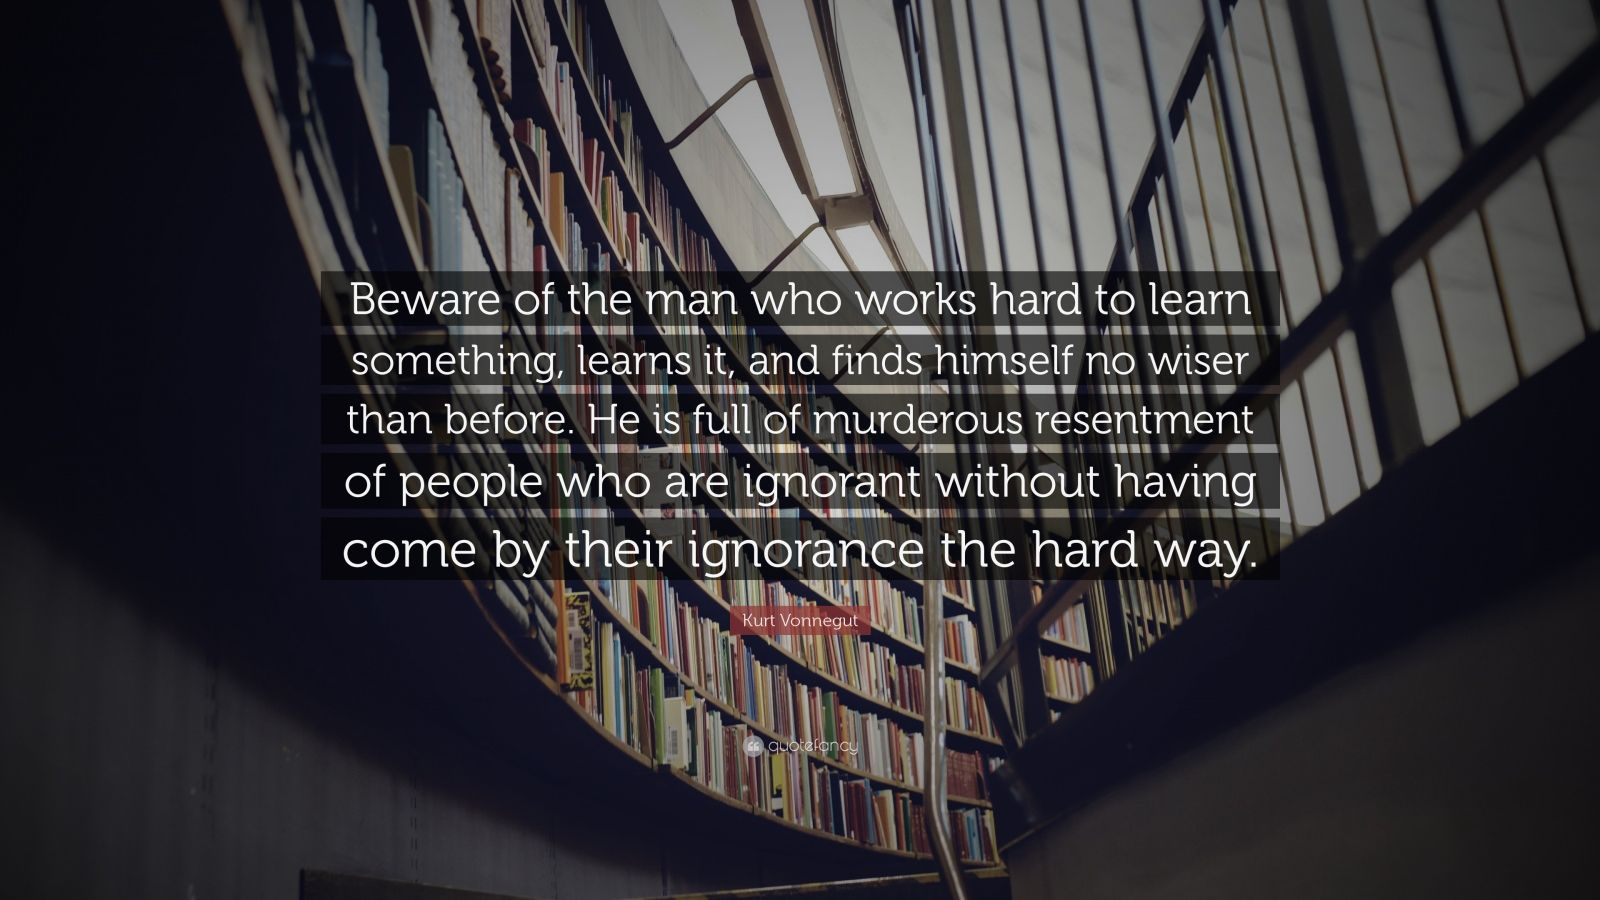 "Kurt Vonnegut Quote: ""Beware of the man who works hard to learn something, learns it, and finds himself no wiser than before. He is full of murderous resentment of people who are ignorant without having come by their ignorance the hard way."""